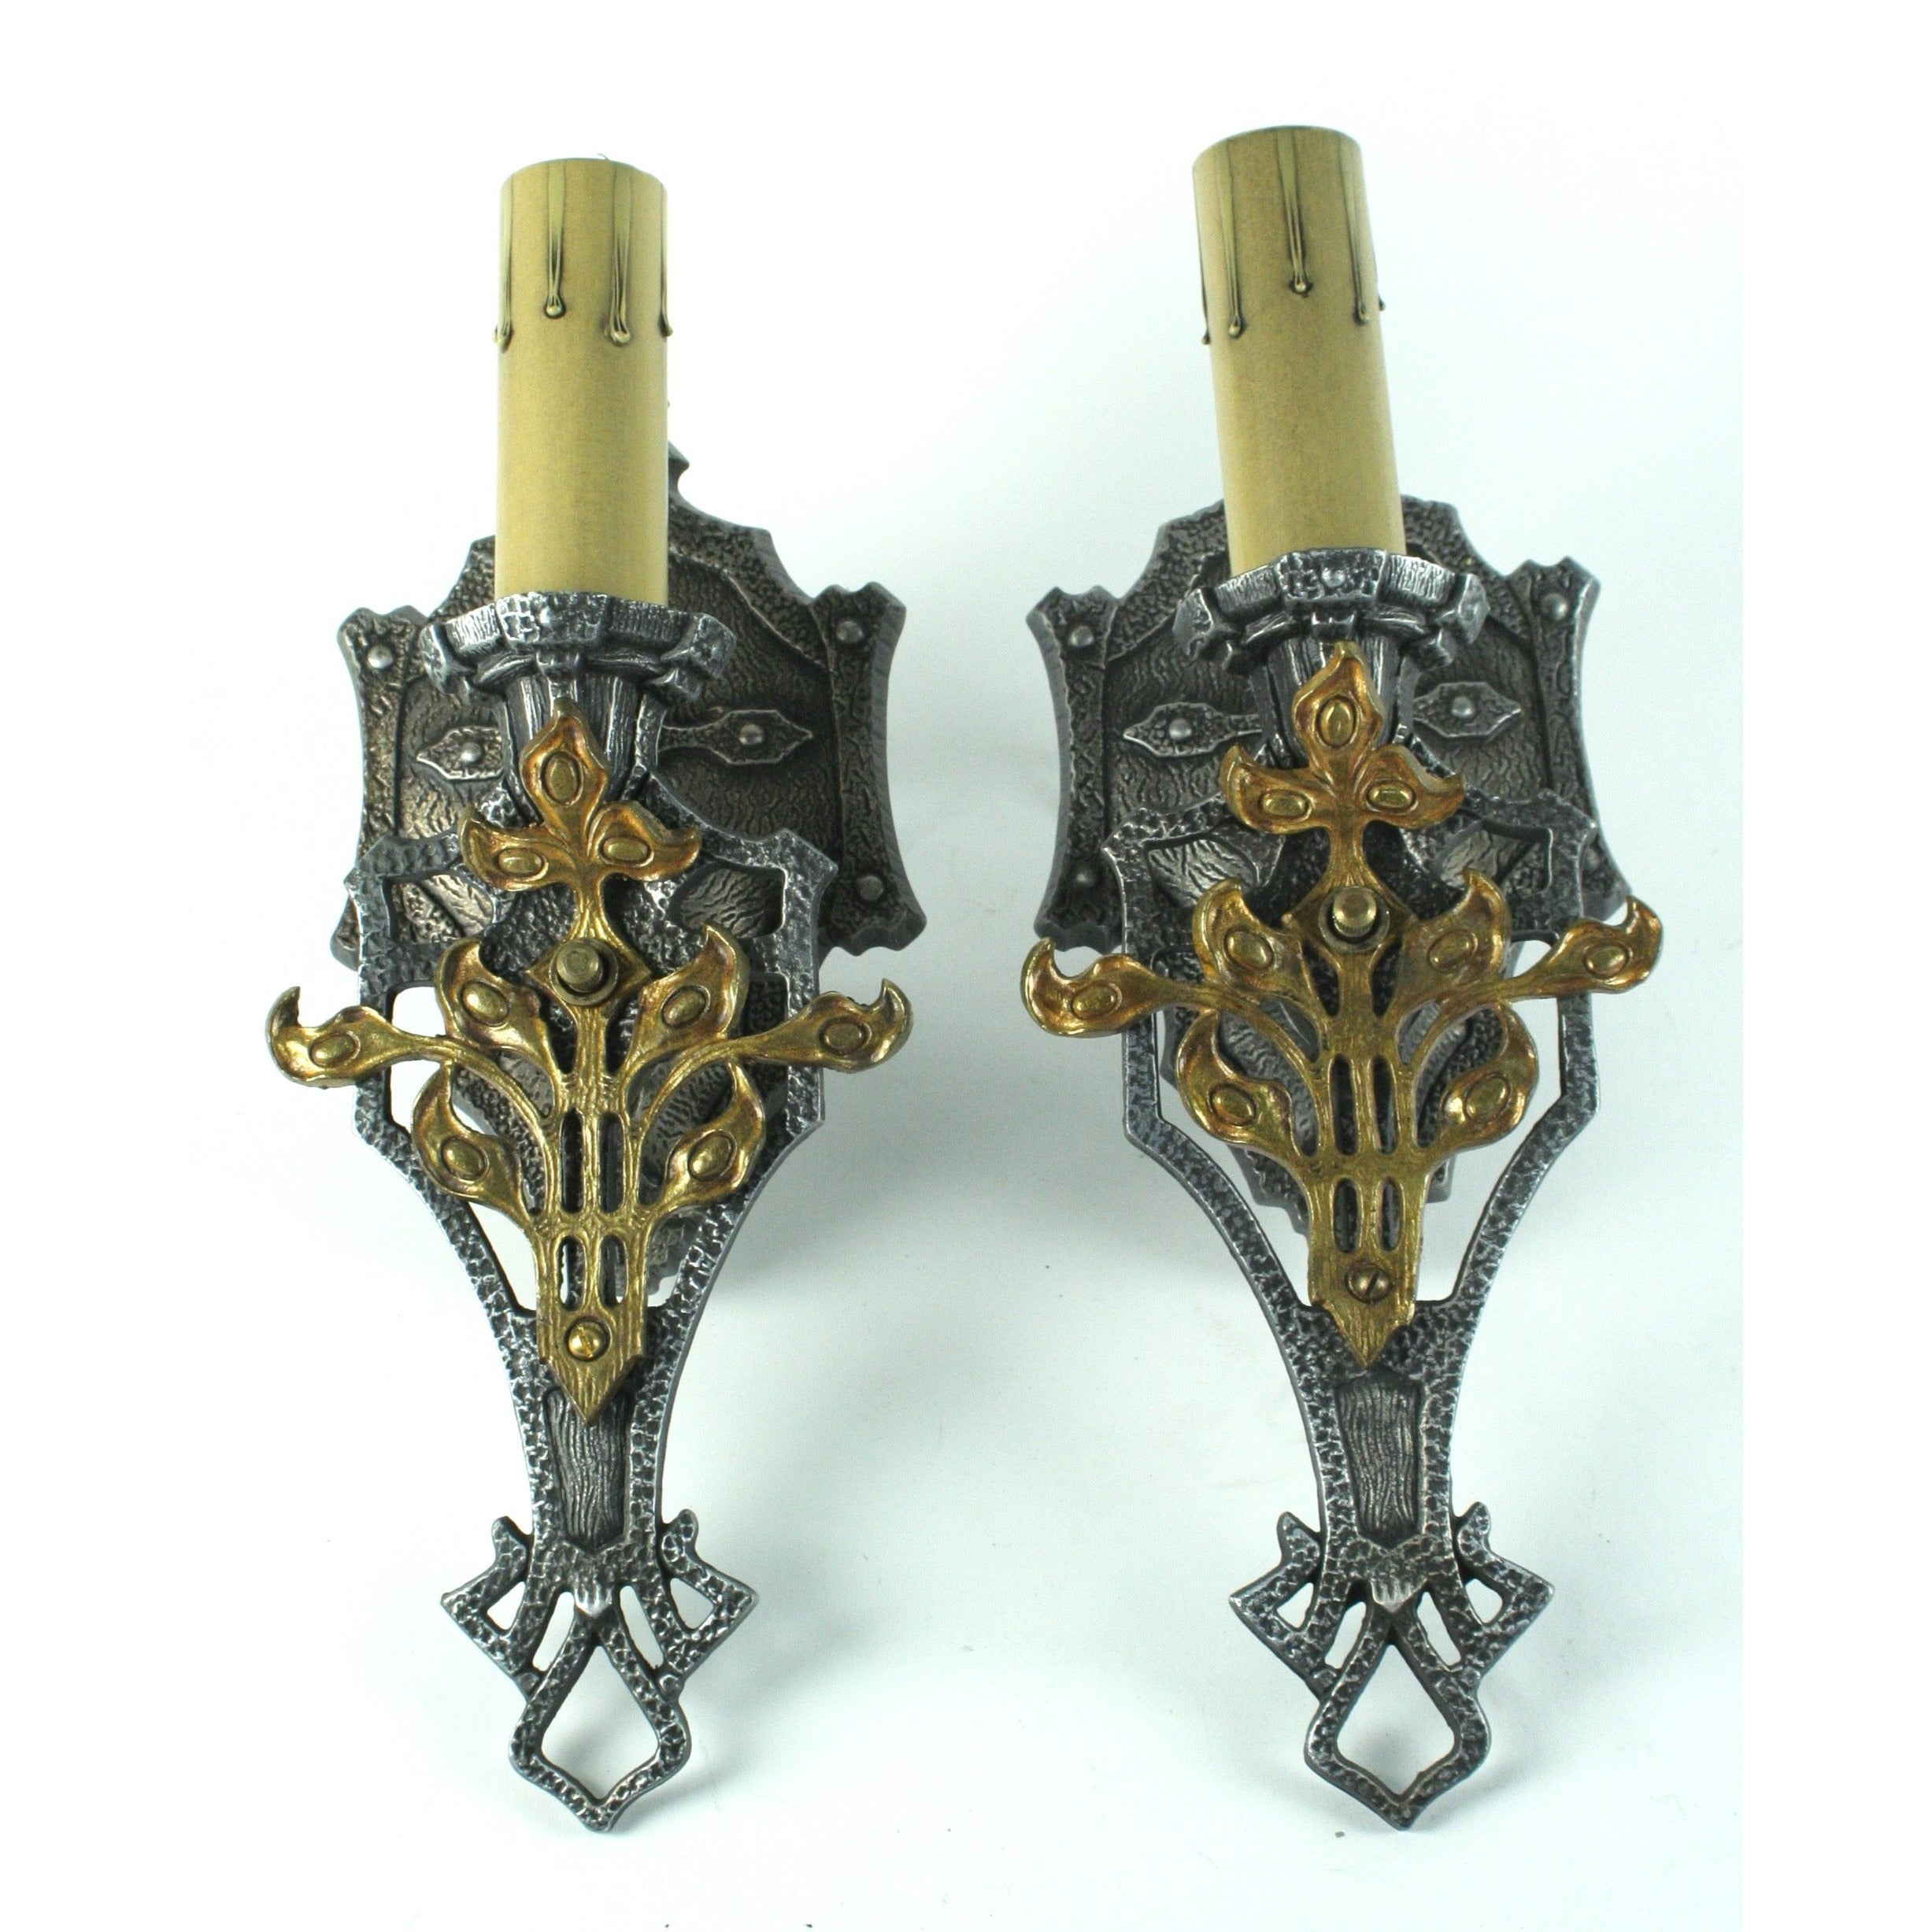 Pair MEP 1920s wall sconces Spanish Revival